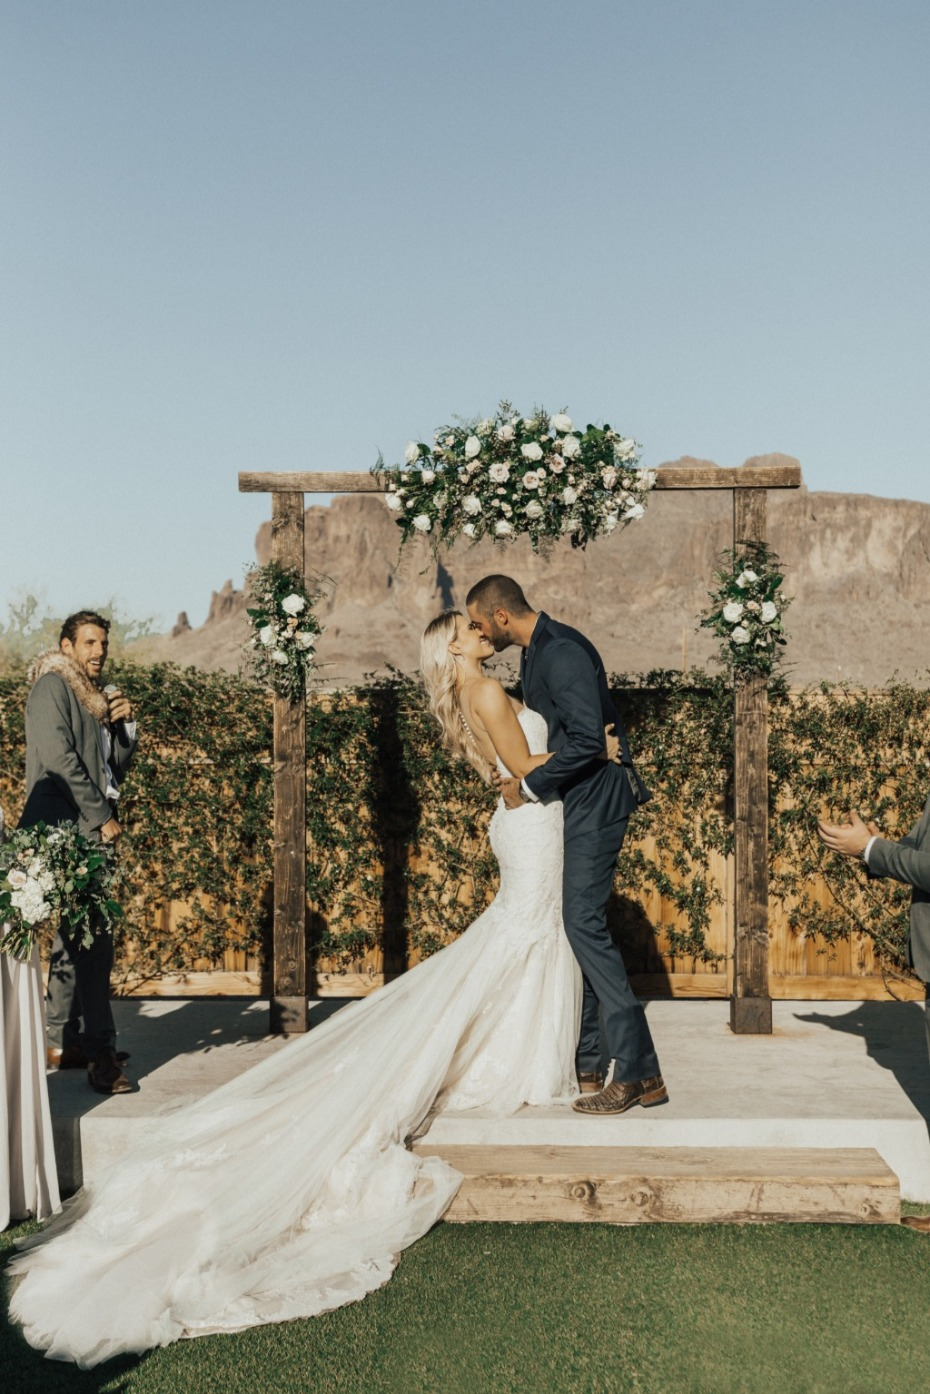 Bride and groom's first kiss at altar with mountain in back